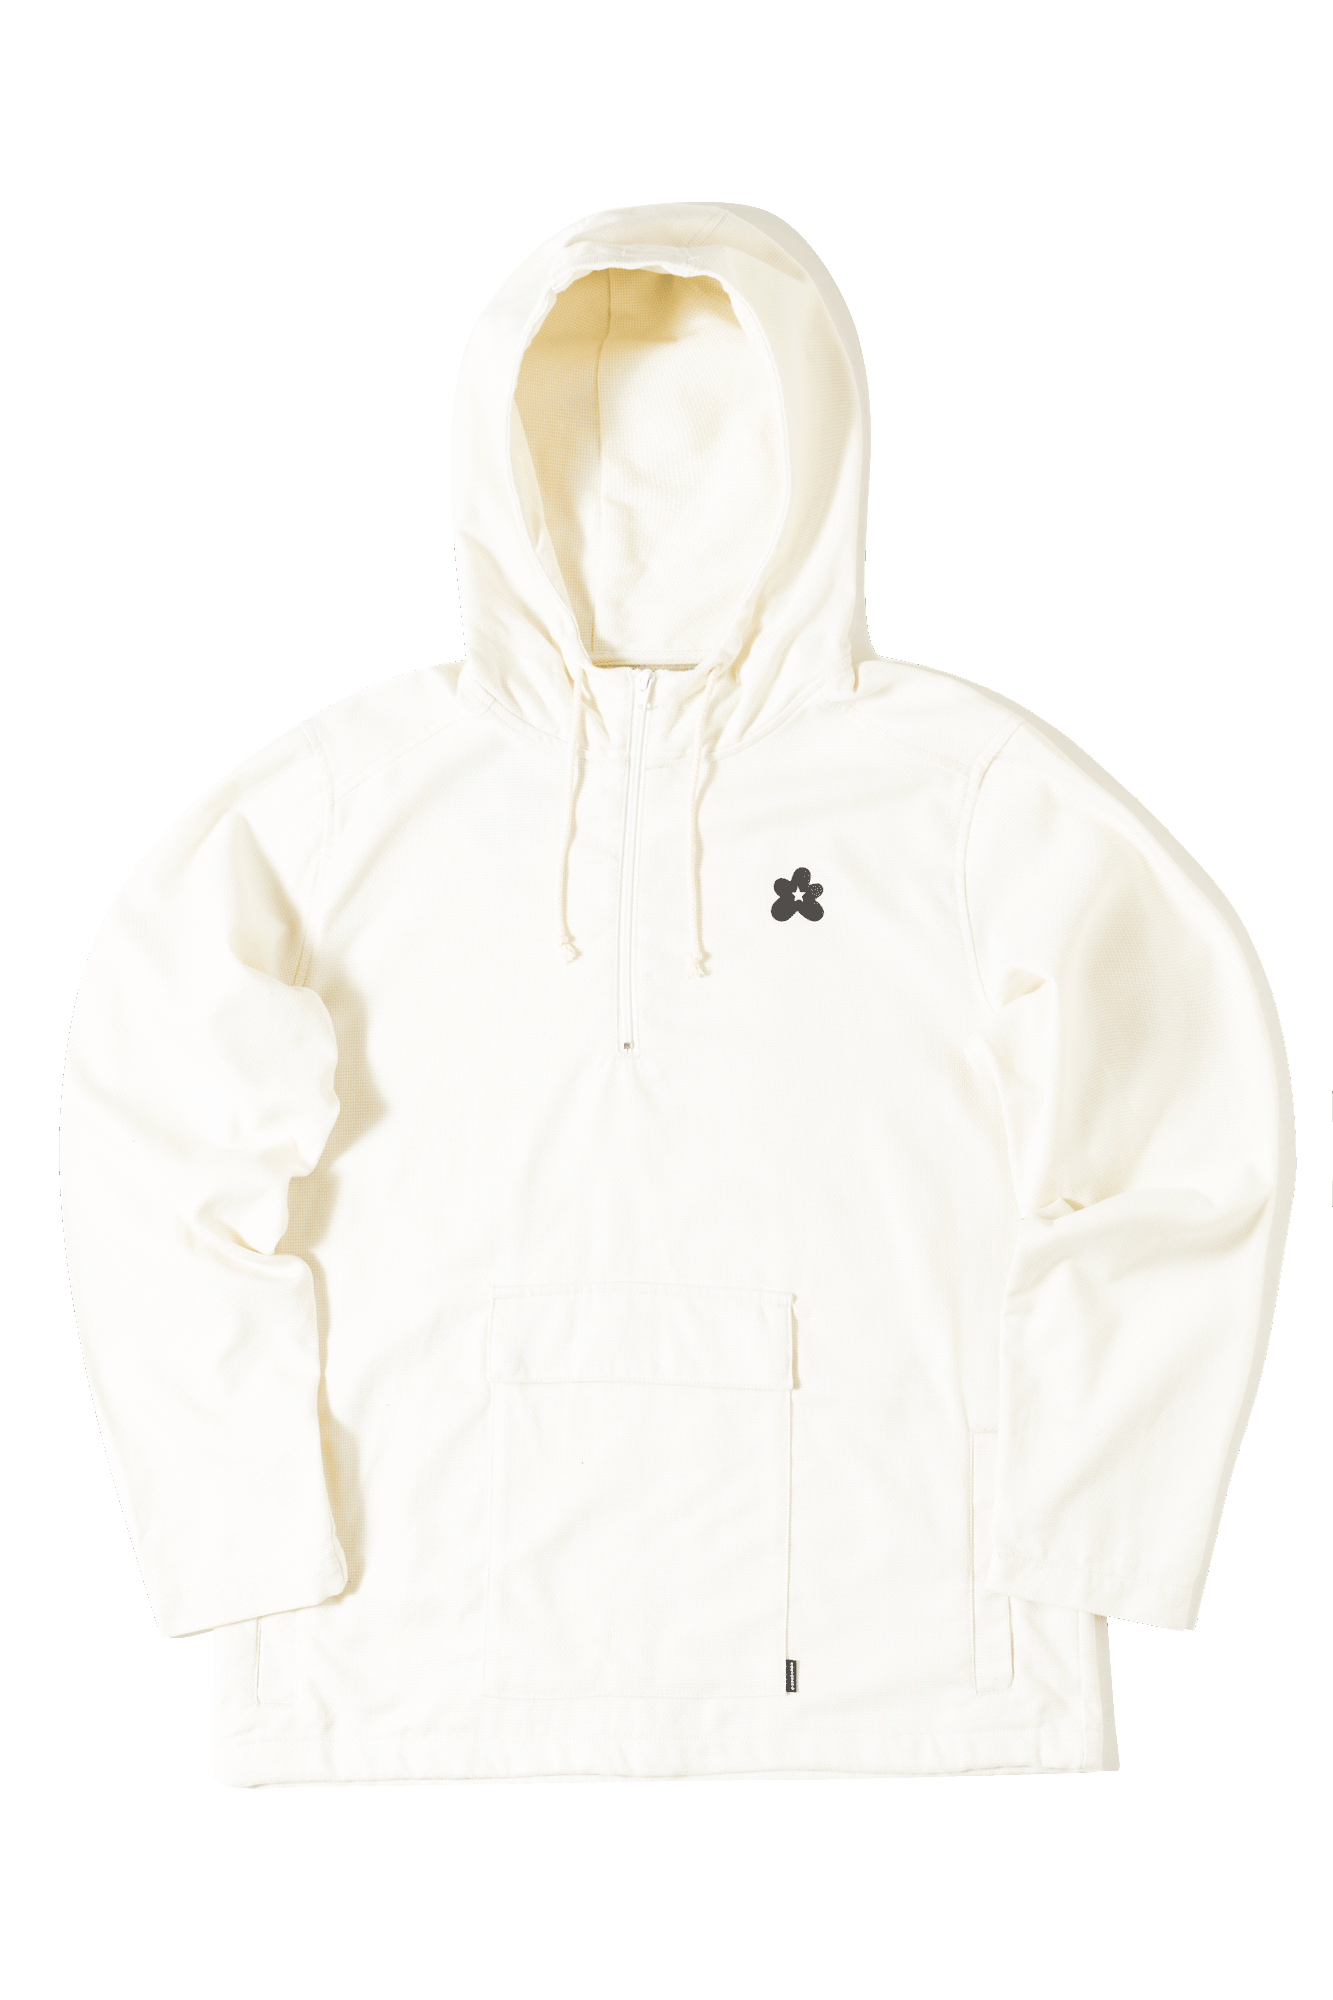 Converse Coats & Jackets Golf Le Fleur Anorak White 100169#75128#C0006#S - One Block Down